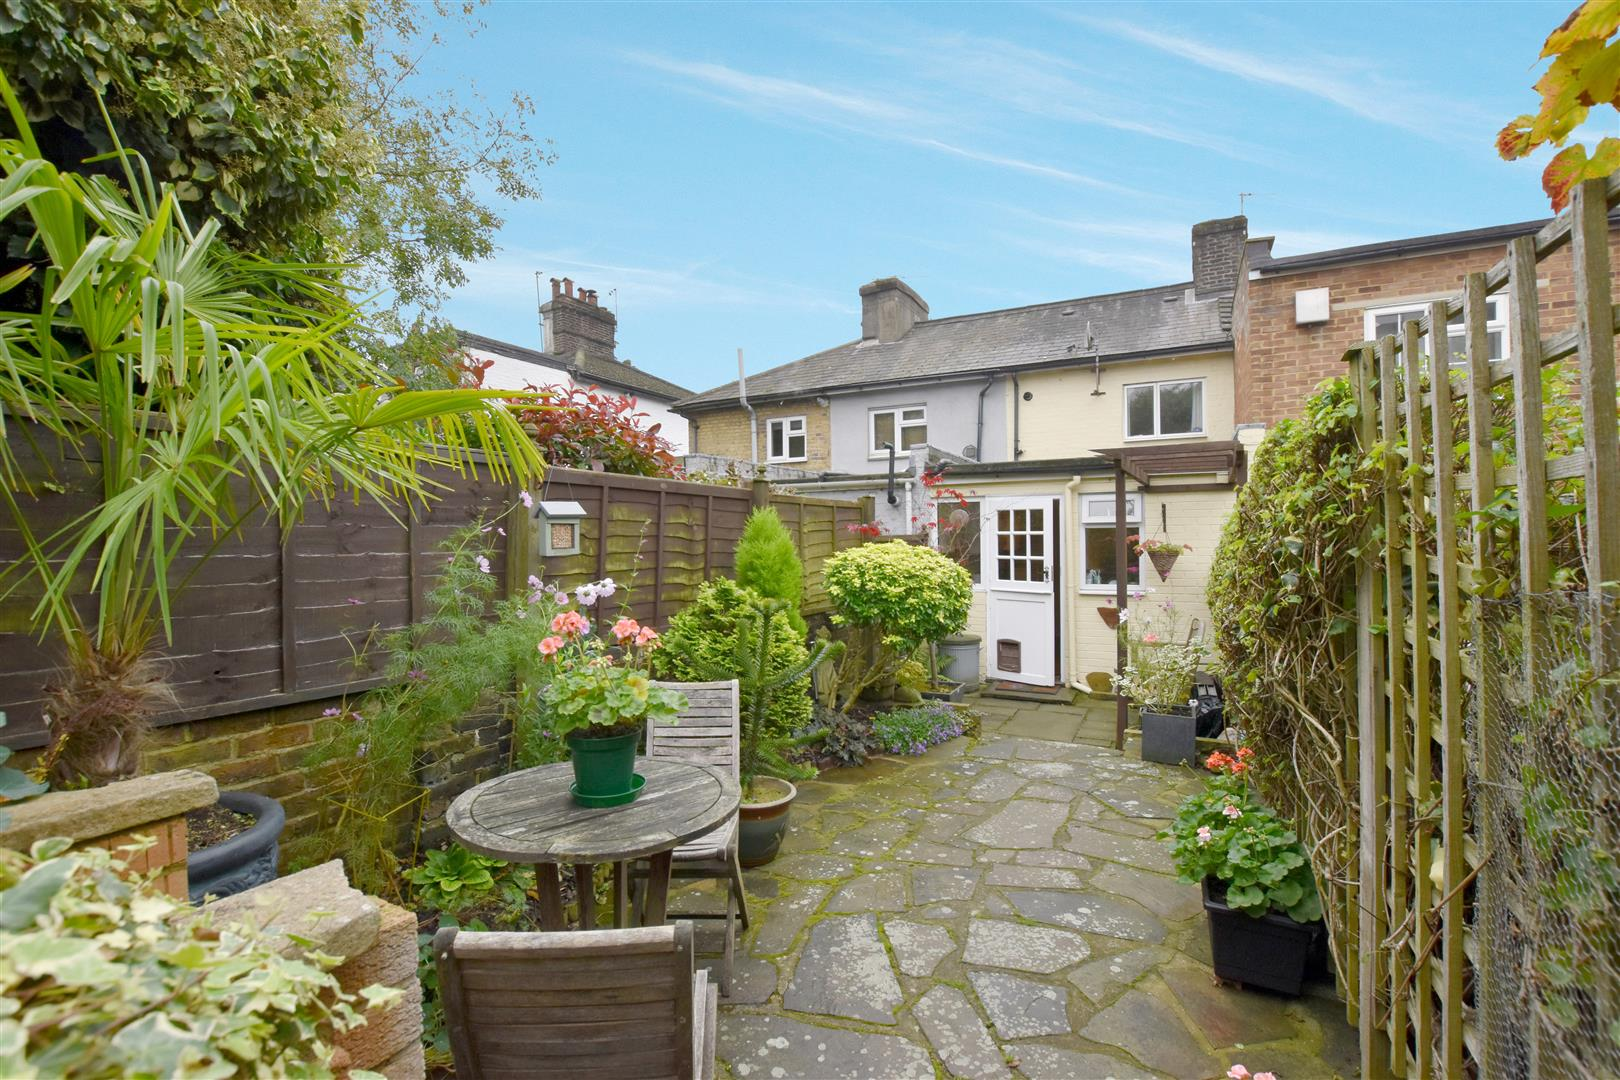 2 Bedrooms House for sale in Redstone Hill, Redhill